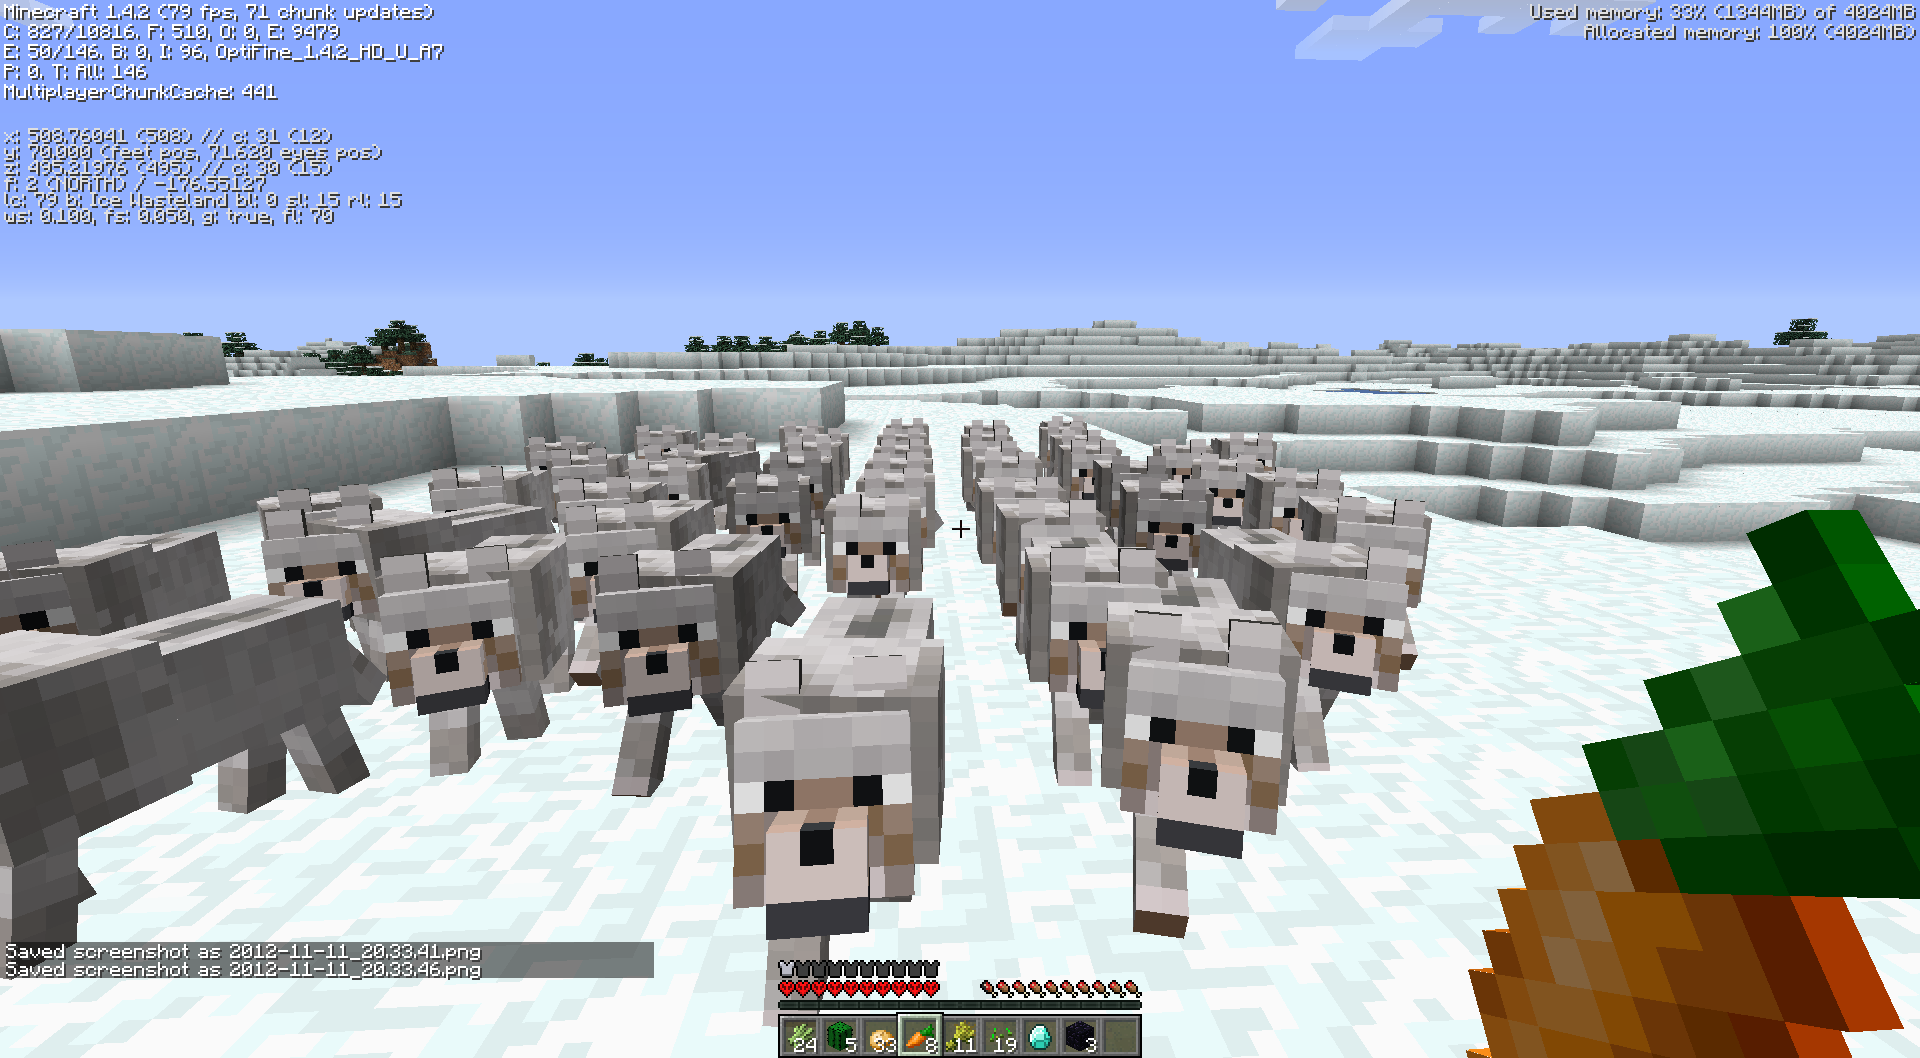 MC-2839] Untamed wolves/ocelots spawning in great numbers